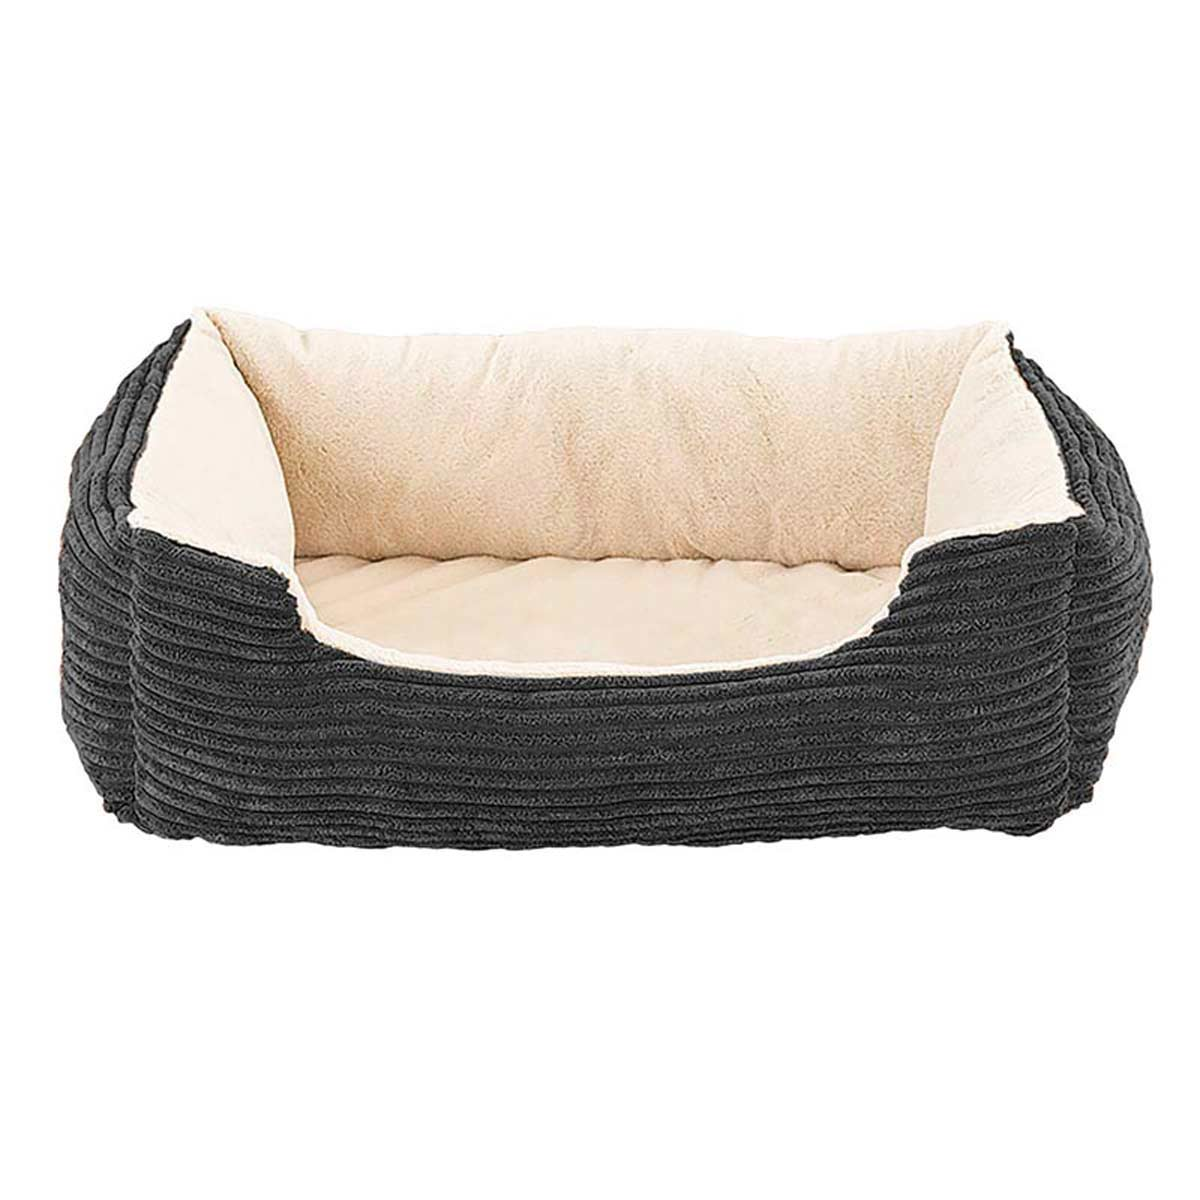 Sleep Zone Step-In Cuddler Corduroy Orthopedic Pet Bed Deep Grey